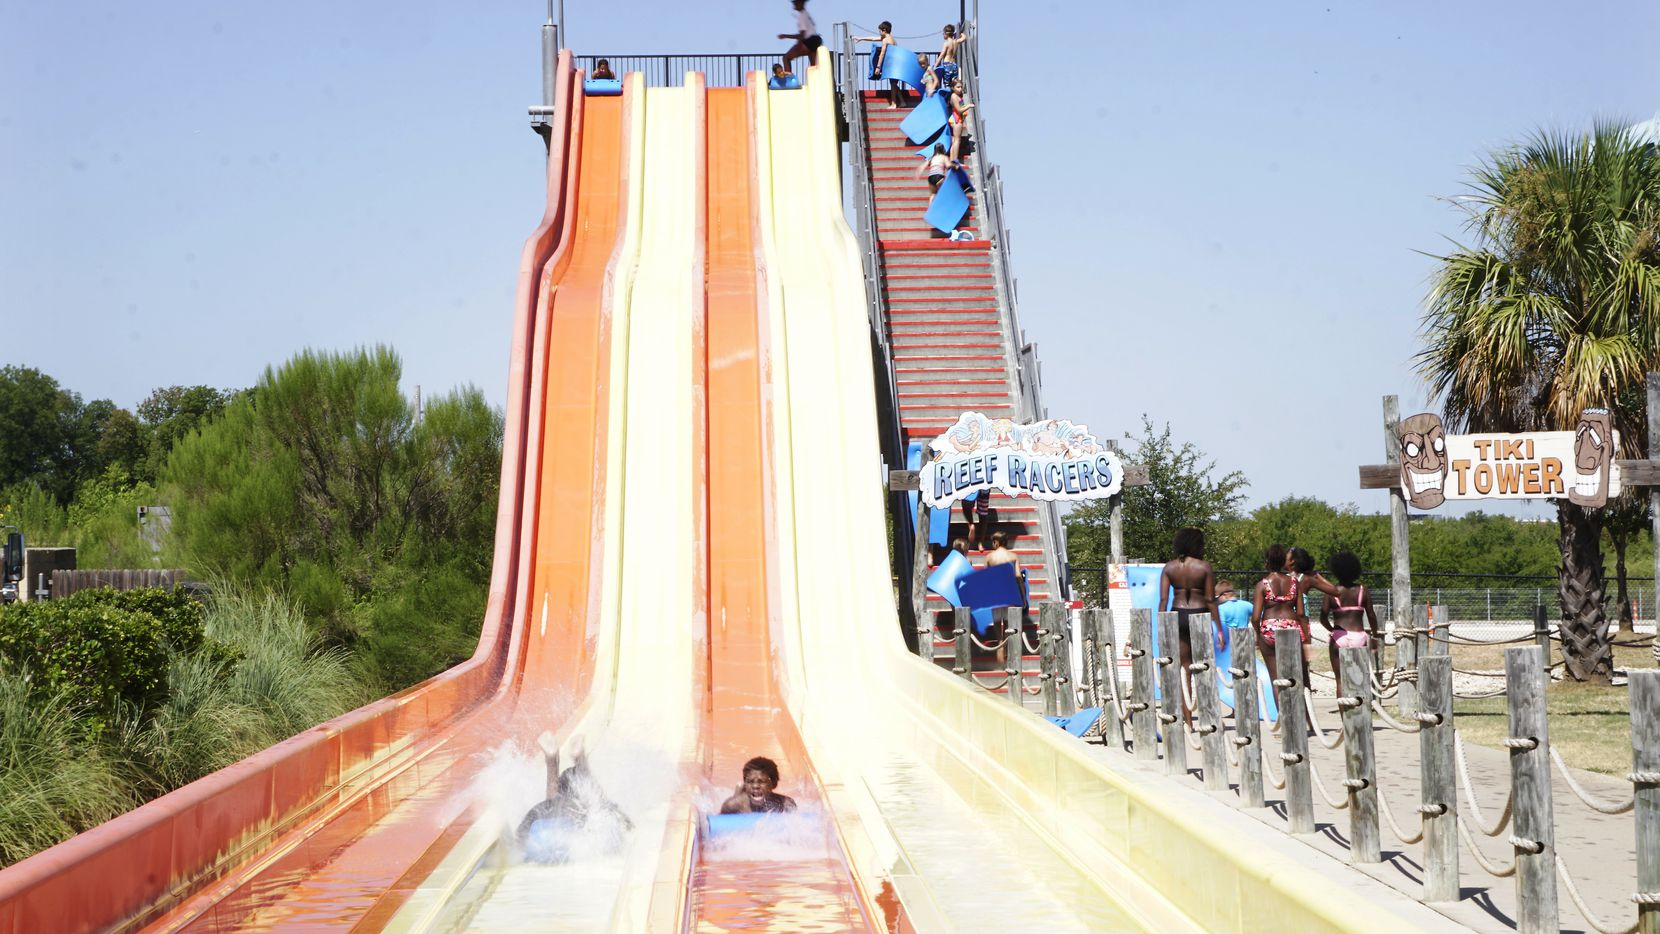 Hawaiian Falls' water park in Mansfield will be one of the first to reopen in North Texas.